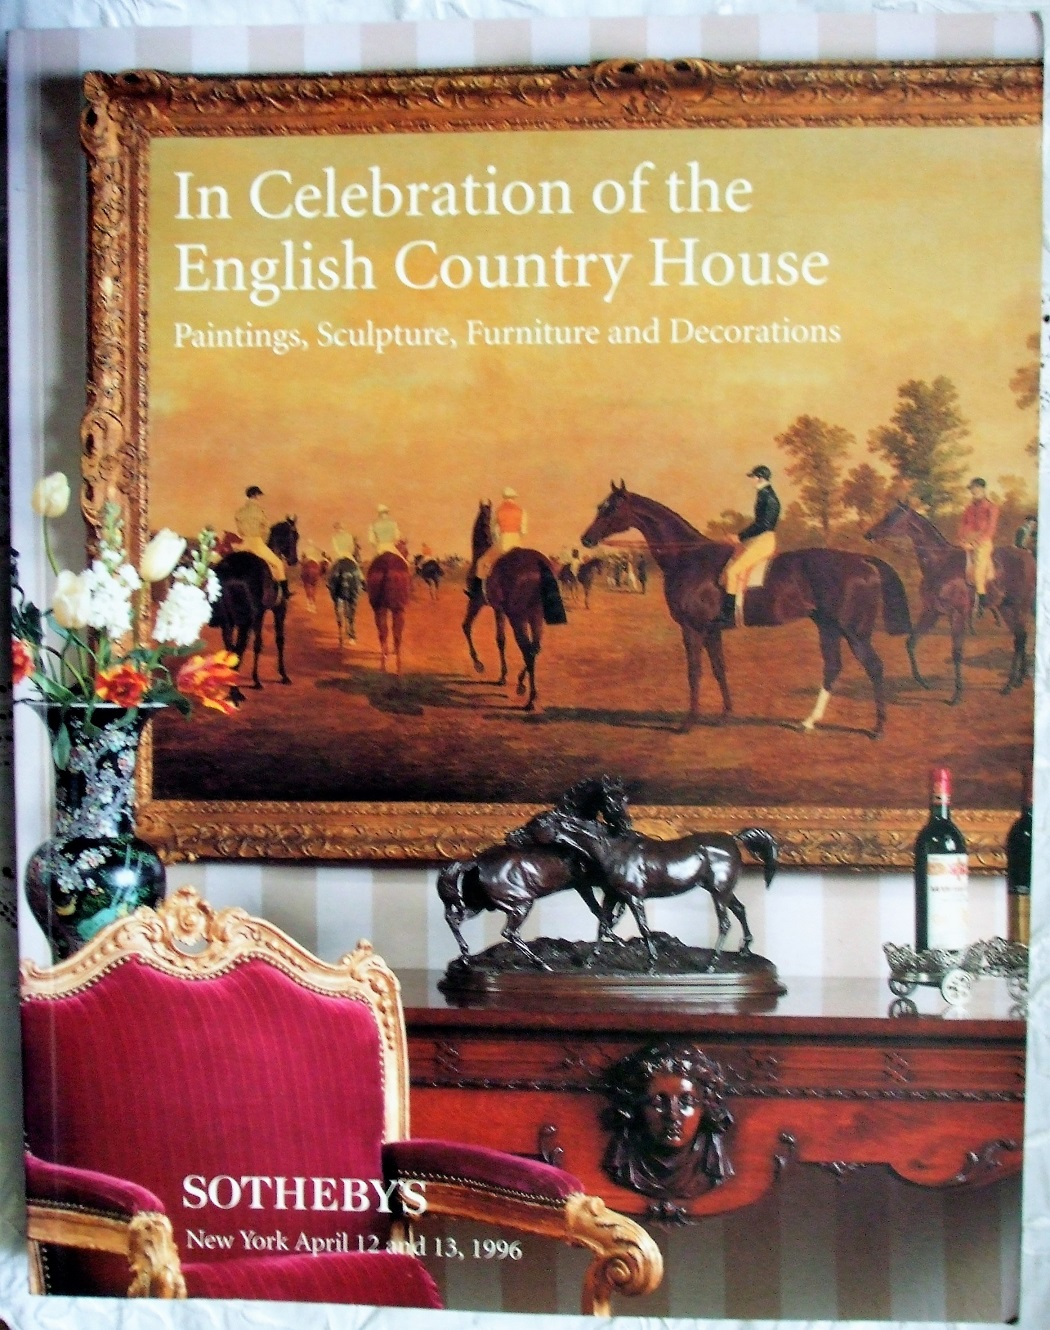 S 6830 EPSOM In Celebration of The English Country House NY 12. - 13. 04. 1996